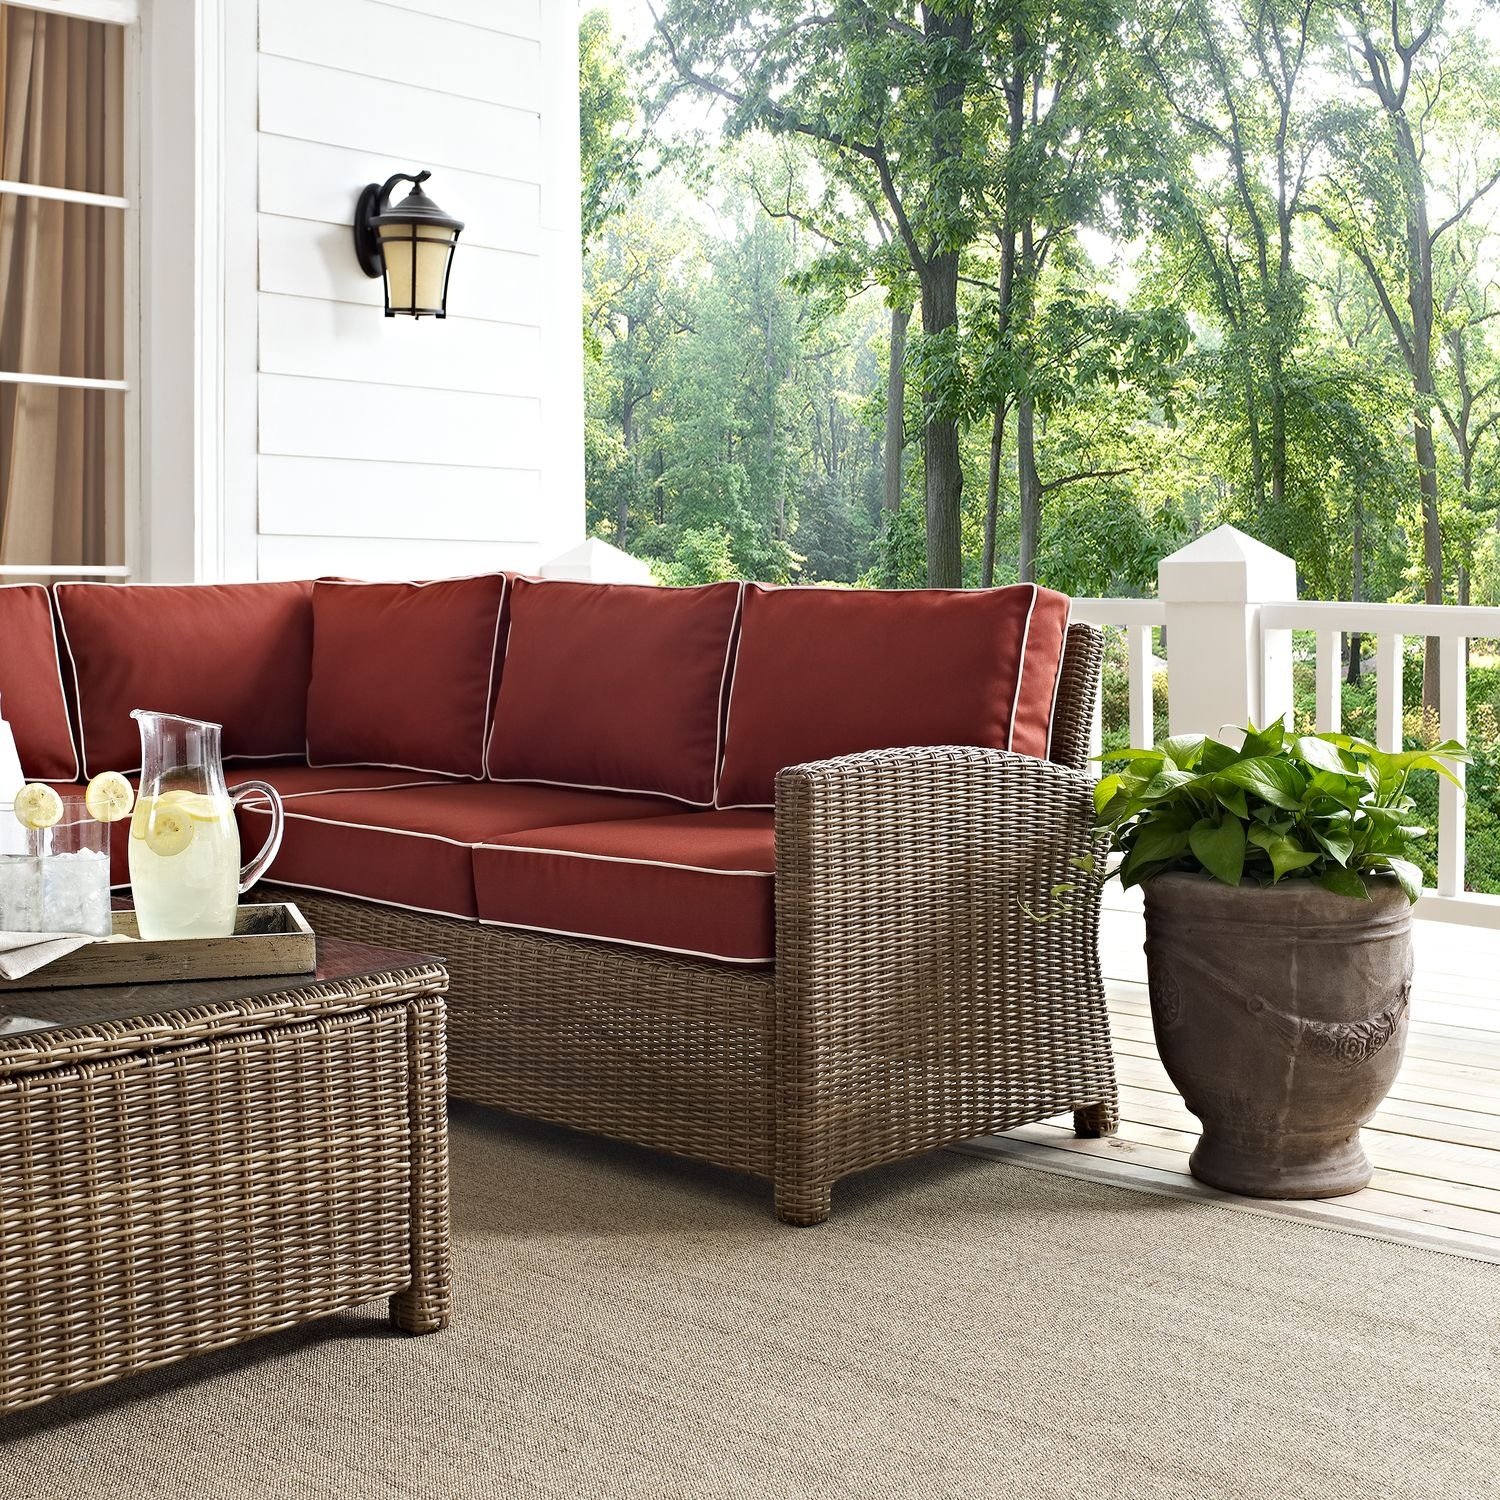 Destin 3 Piece Outdoor Sectional Chair And Cocktail Table Set Sangria Value City Furniture